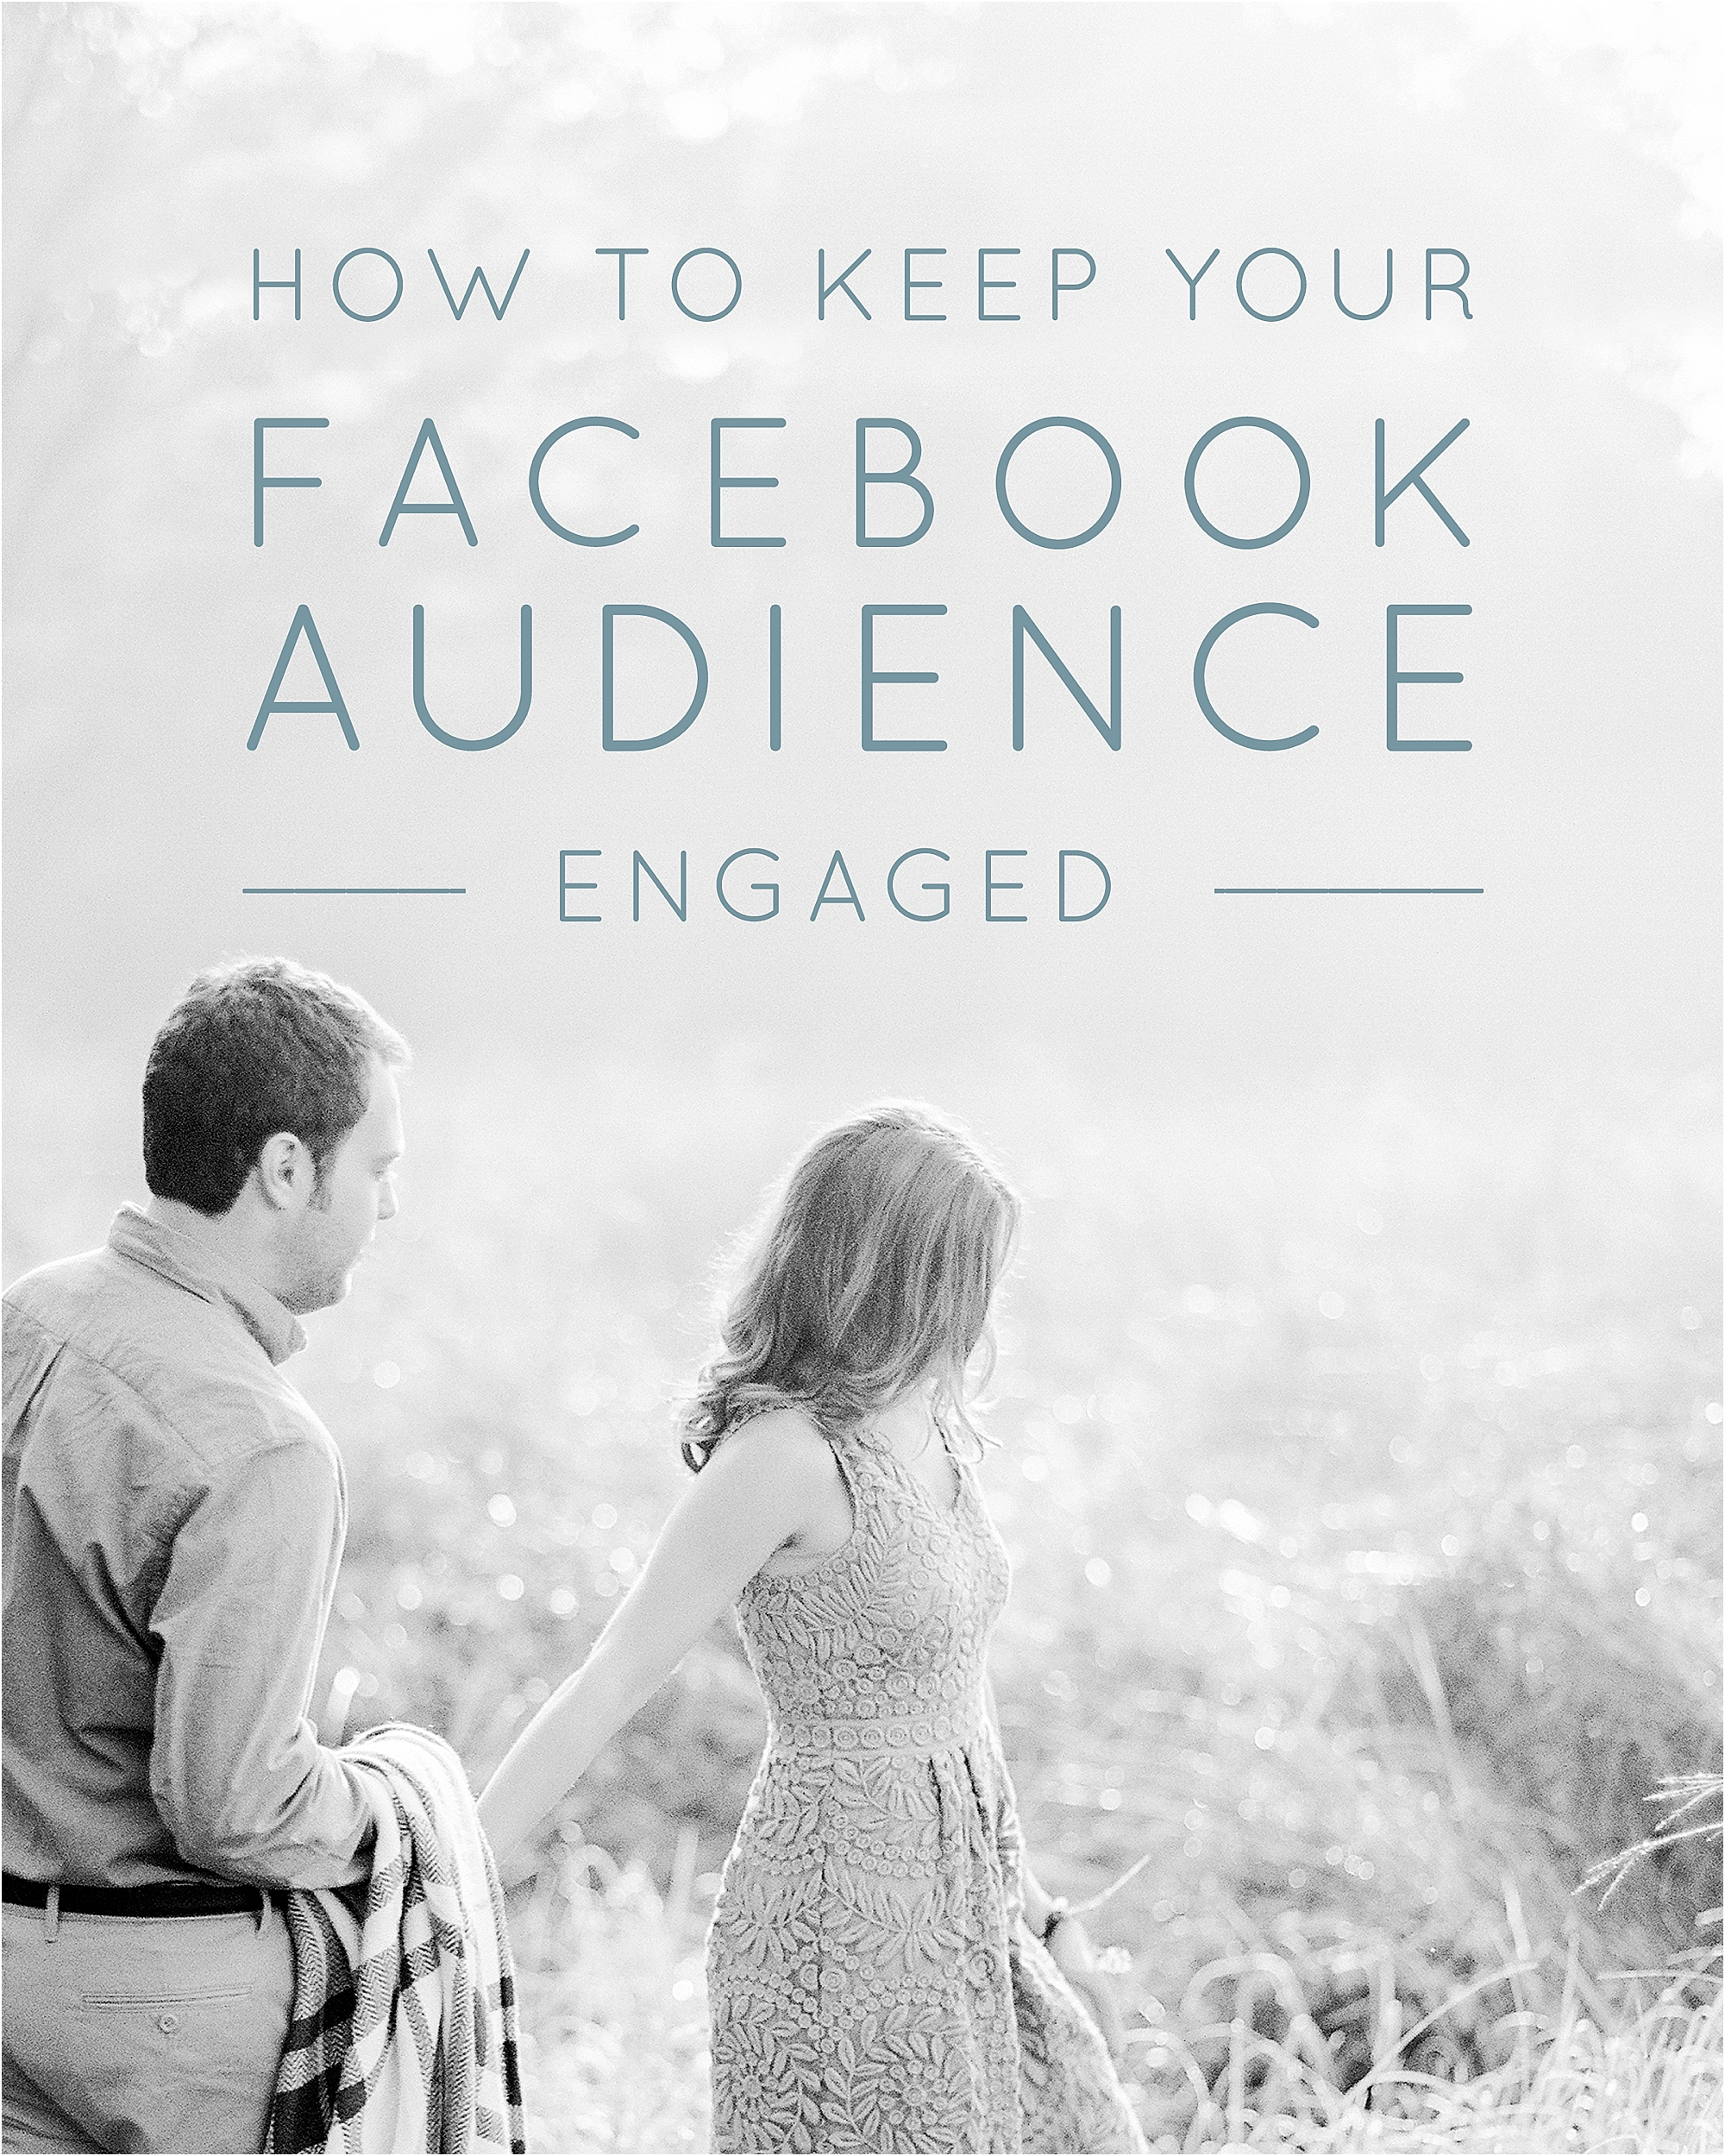 How to Keep Your Facebook Audience Engaged - The Jordan Brittley Blog